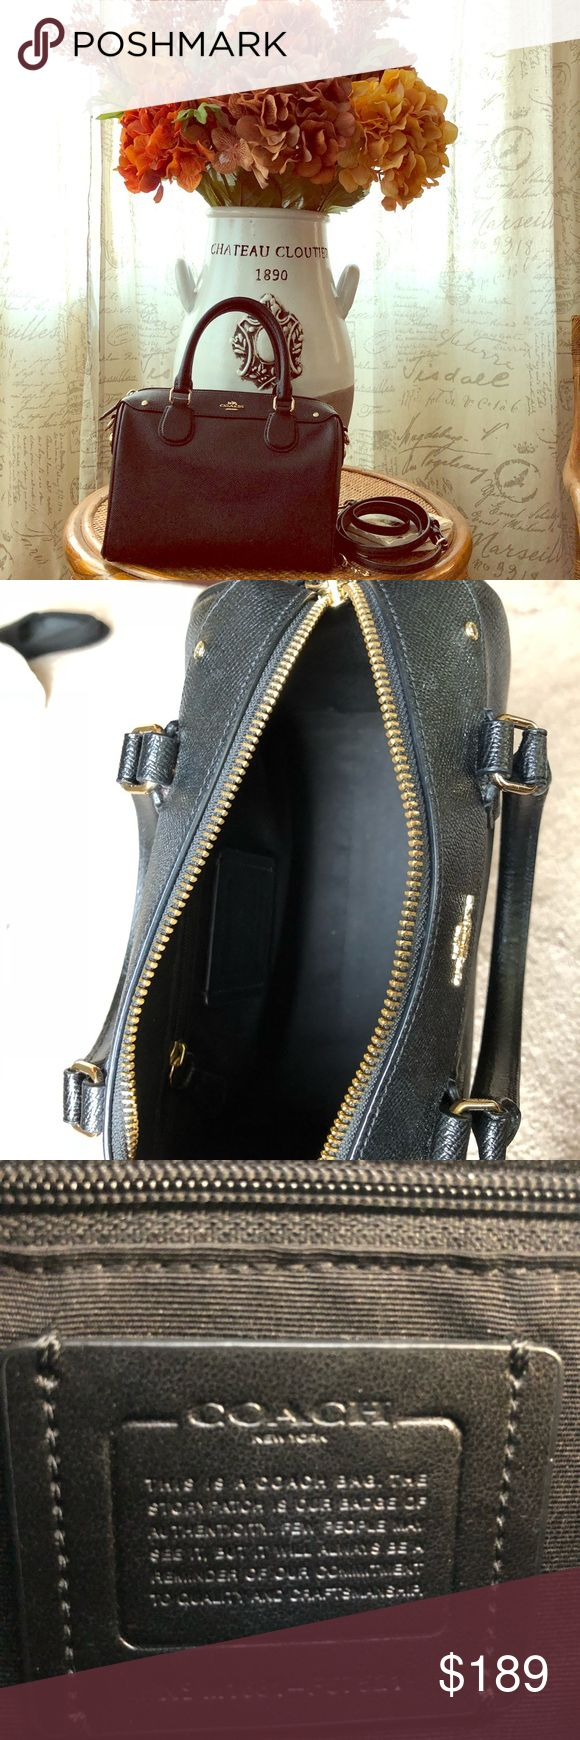 Coach purse Like new. Just bought it this year. Gorgeous black Coach purse. It seems tiny but ALOT can fit. It has two small compartments on the sides. Includes an adjustable & detachable strap. Feel free to ask questions. Coach Bags Mini Bags